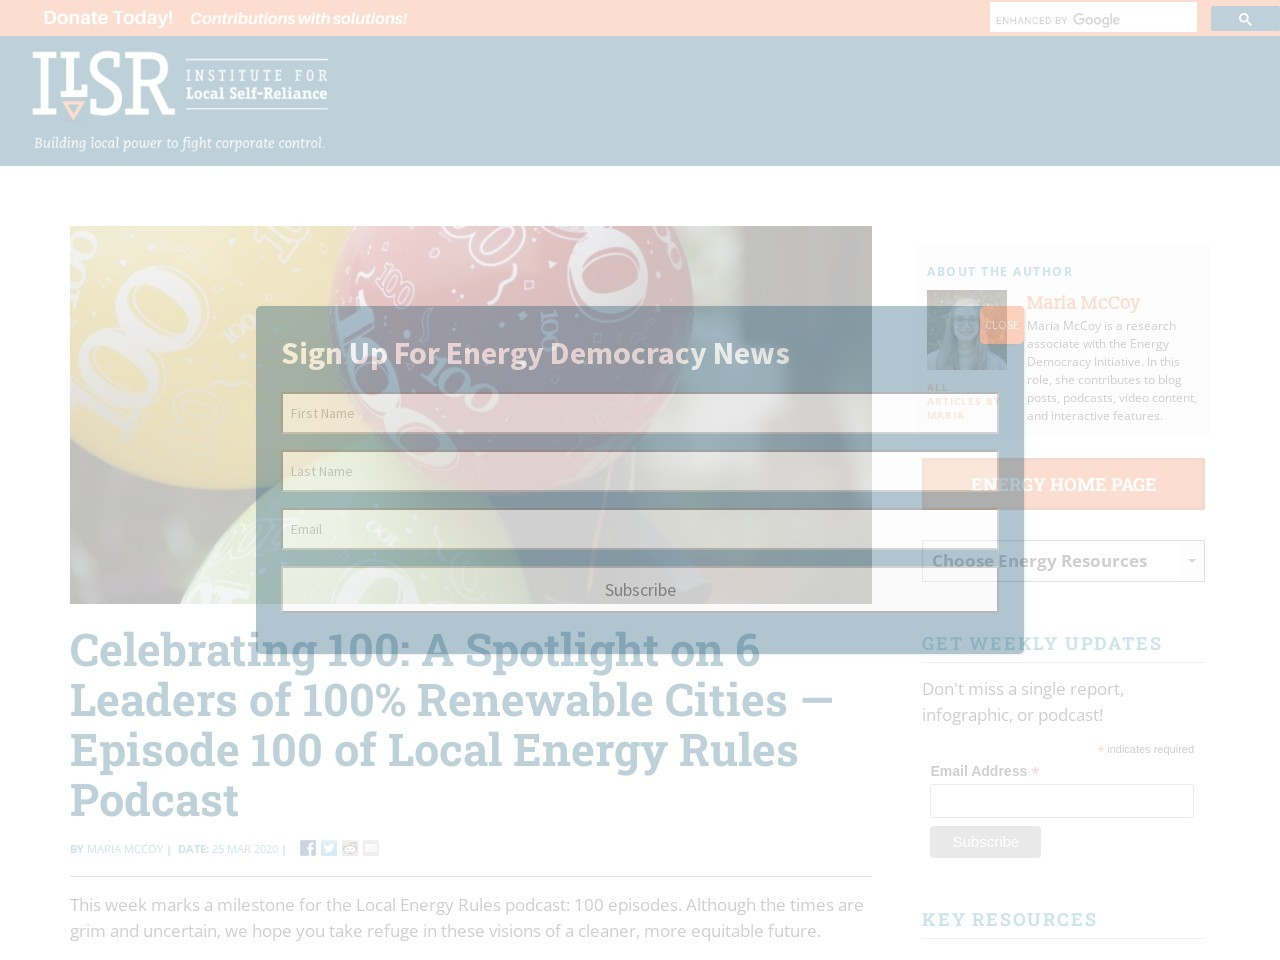 Celebrating 100: A Spotlight on 6 Leaders of 100% Renewable Cities